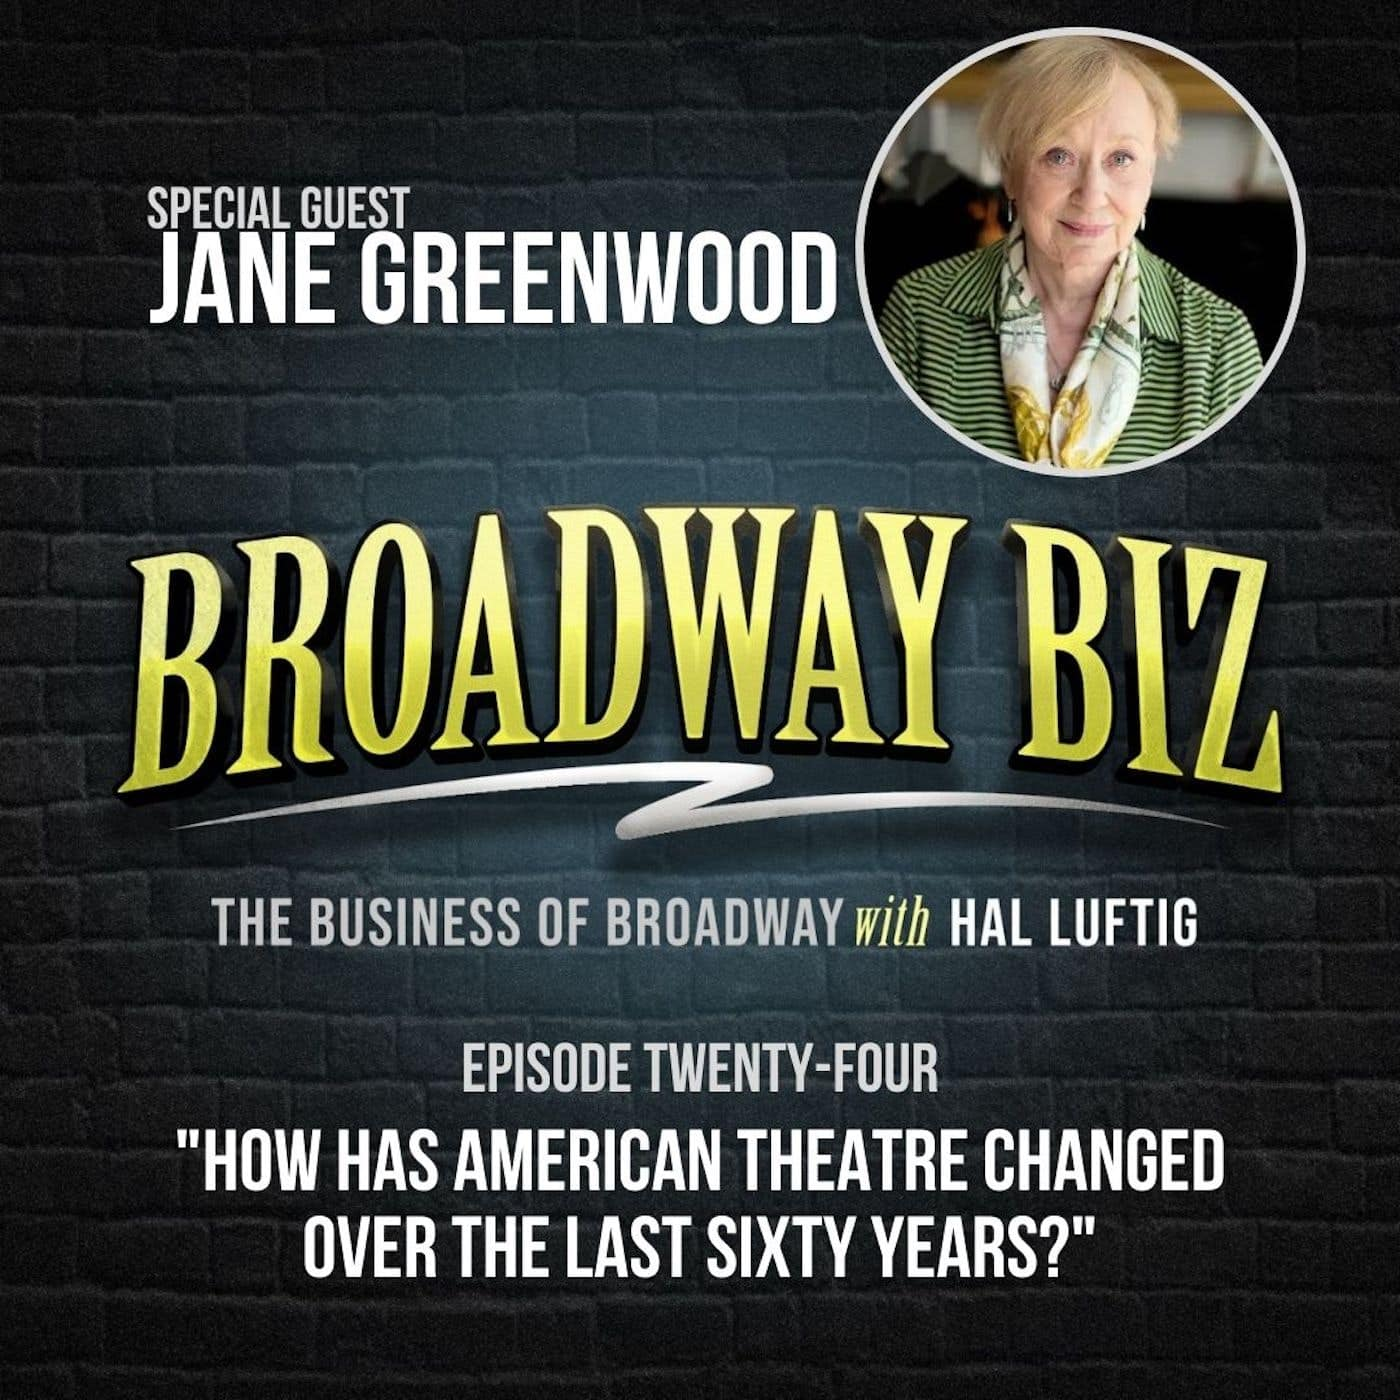 #24 - How Has American Theatre Changed Over the Last Sixty Years? with Jane Greenwood